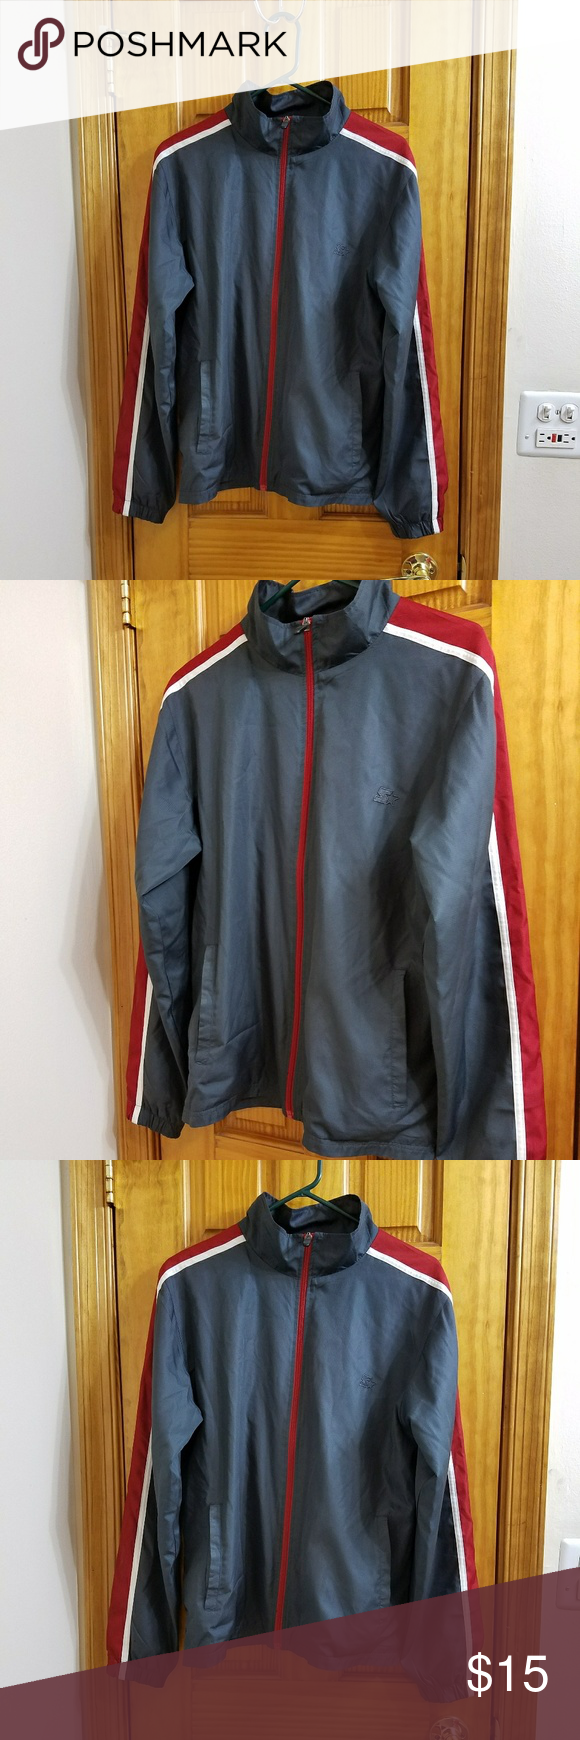 Jacket Brand new  Has pockets on the outside  Stand collar  Red, grey, and white. z☆ Jackets & Coats Lightweight & Shirt Jackets